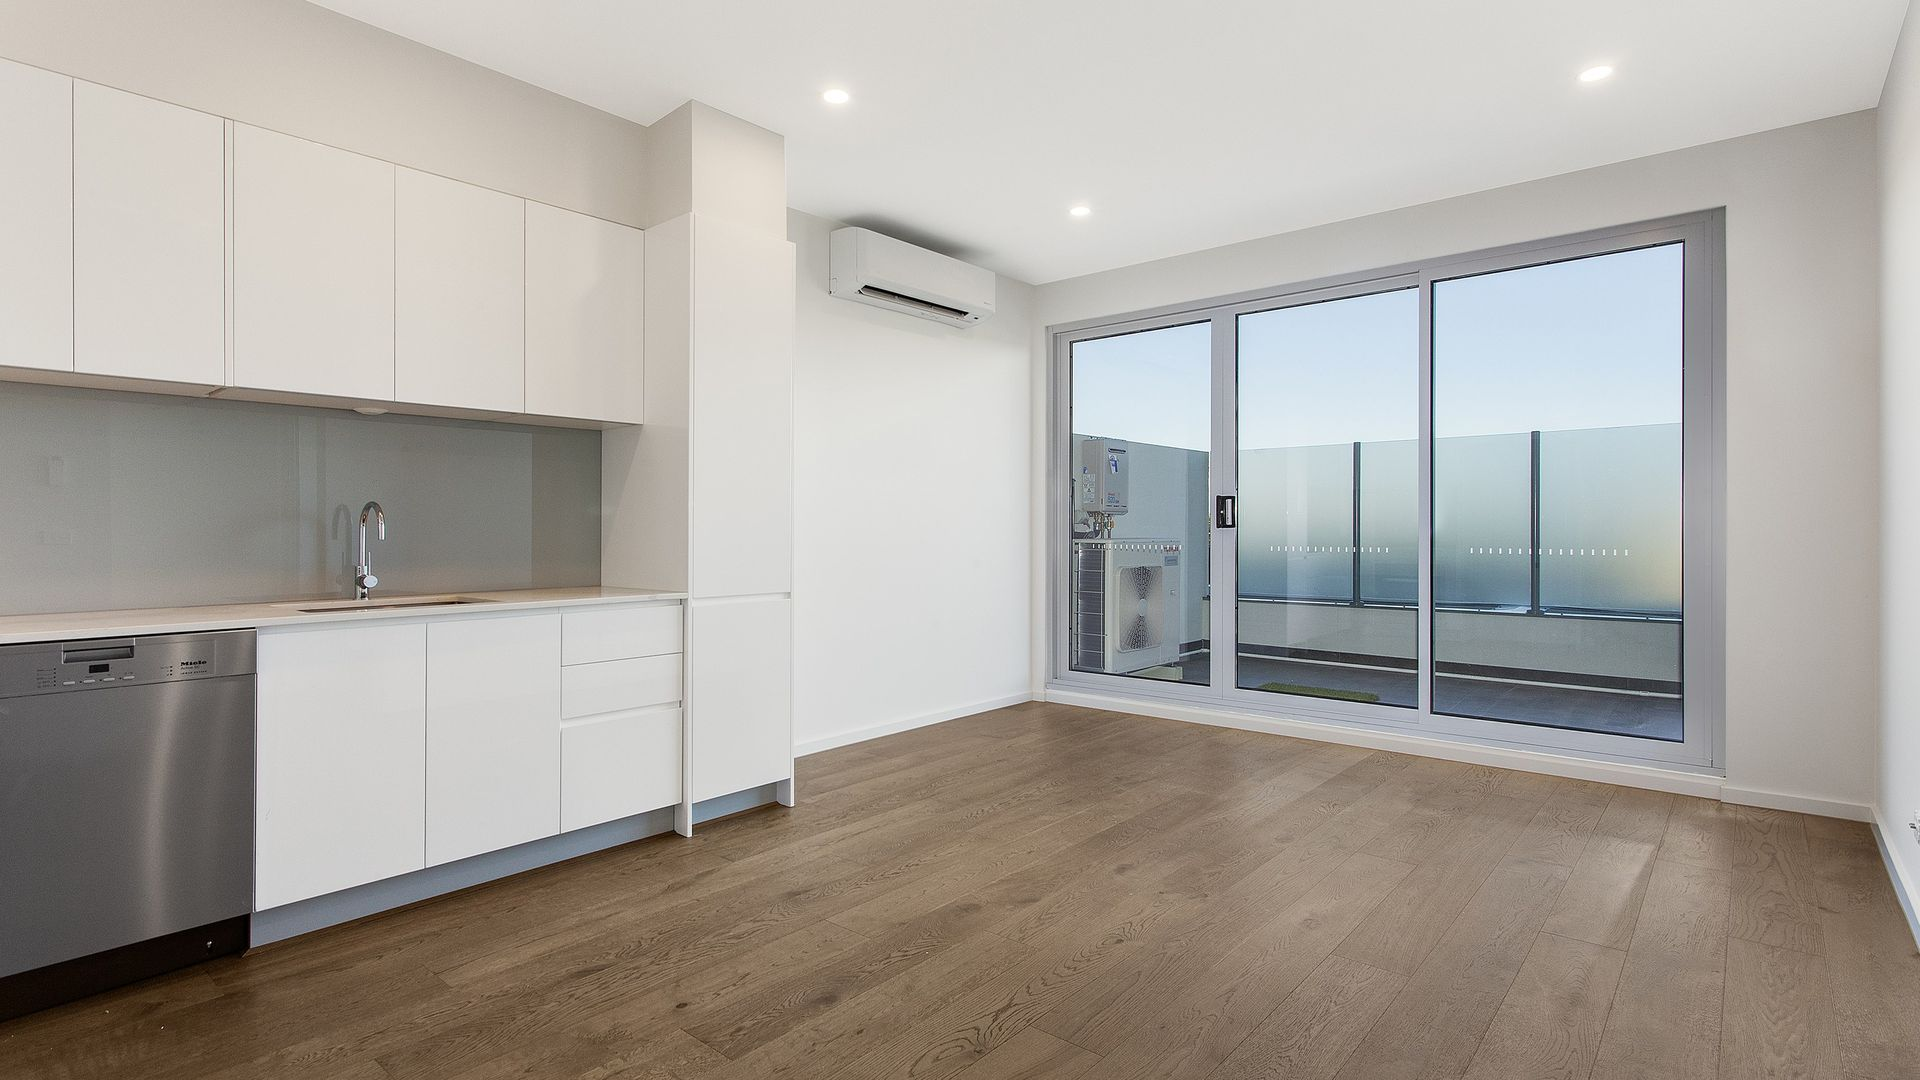 203/170 East Boundary Road,, Bentleigh East VIC 3165, Image 1